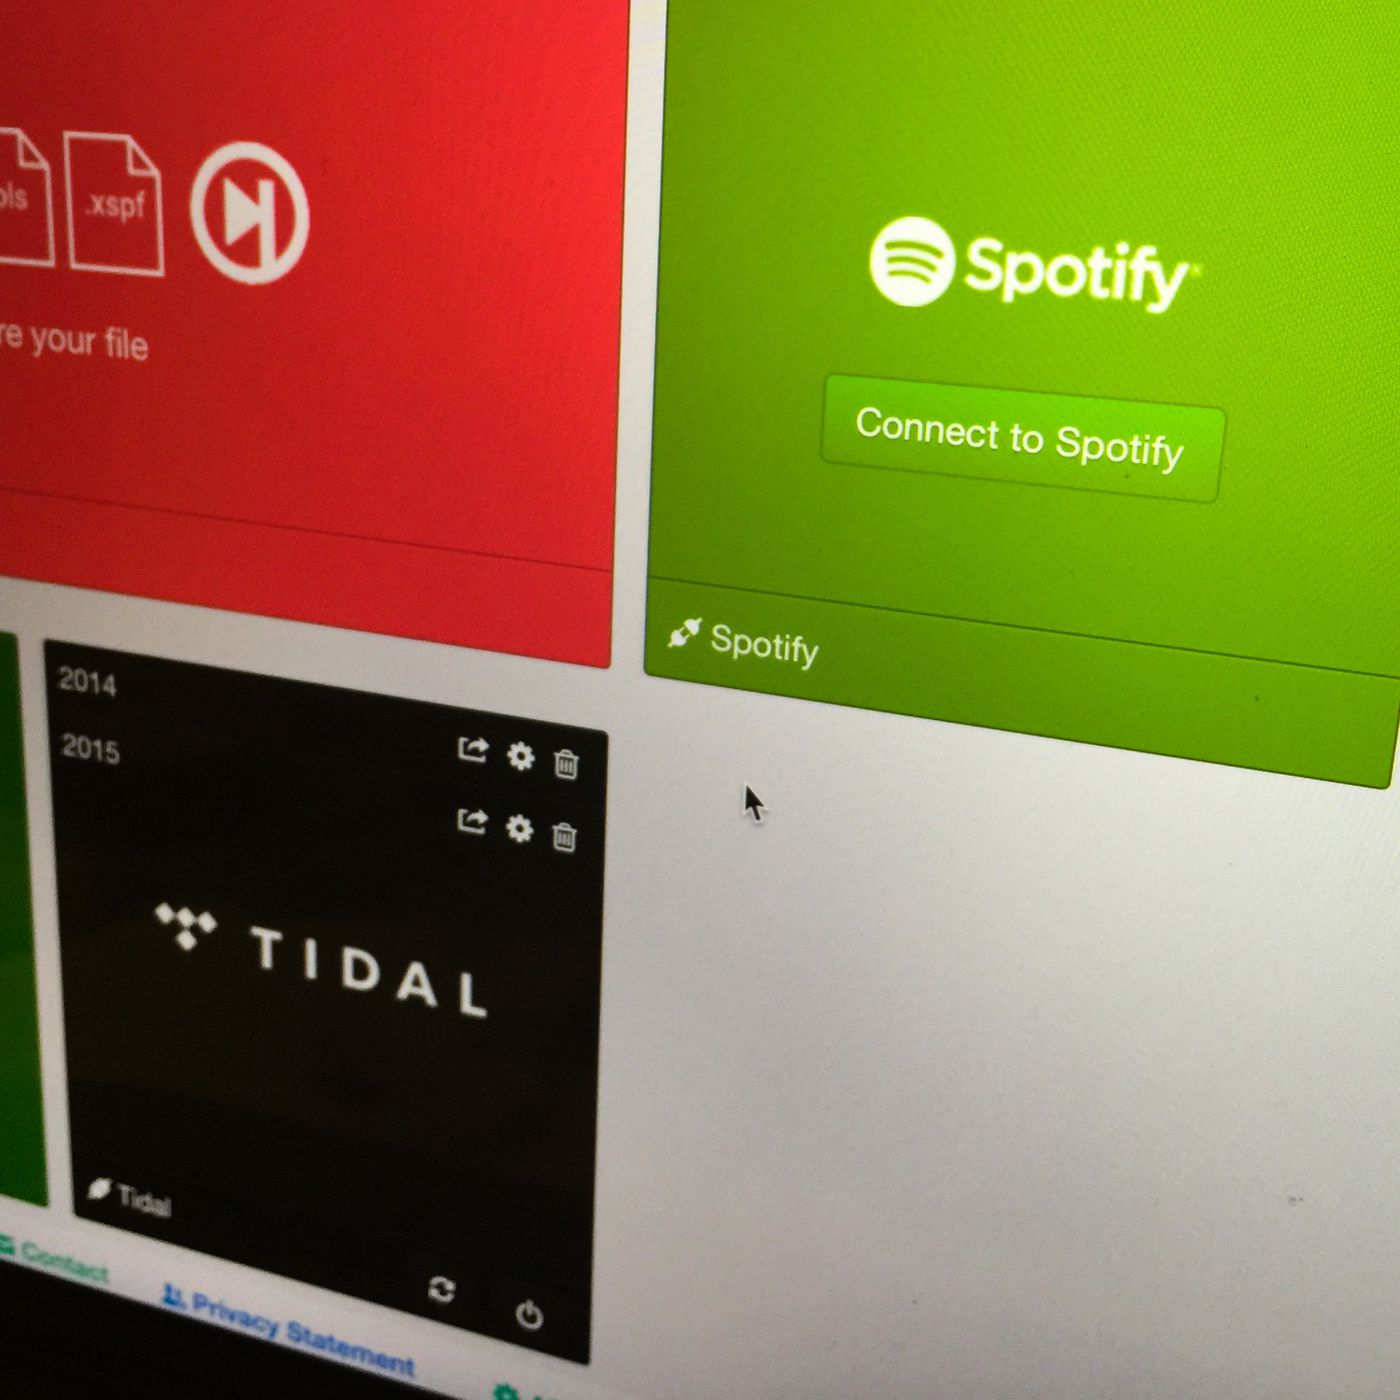 Jay Z wants you to move your Spotify playlists to Tidal